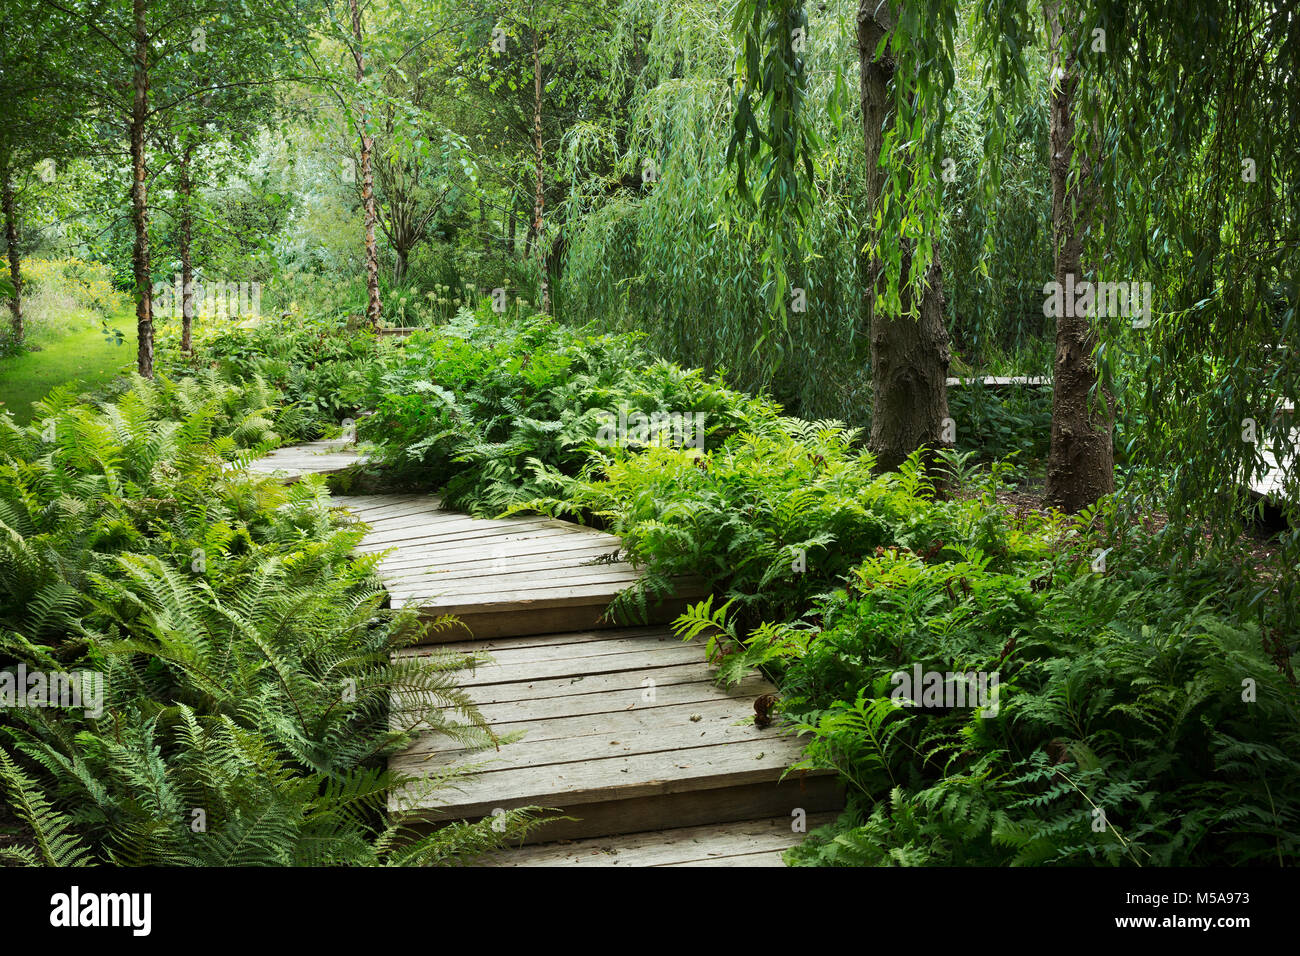 Willow trees and fern growing around curved wooden boardwalk in a garden. - Stock Image